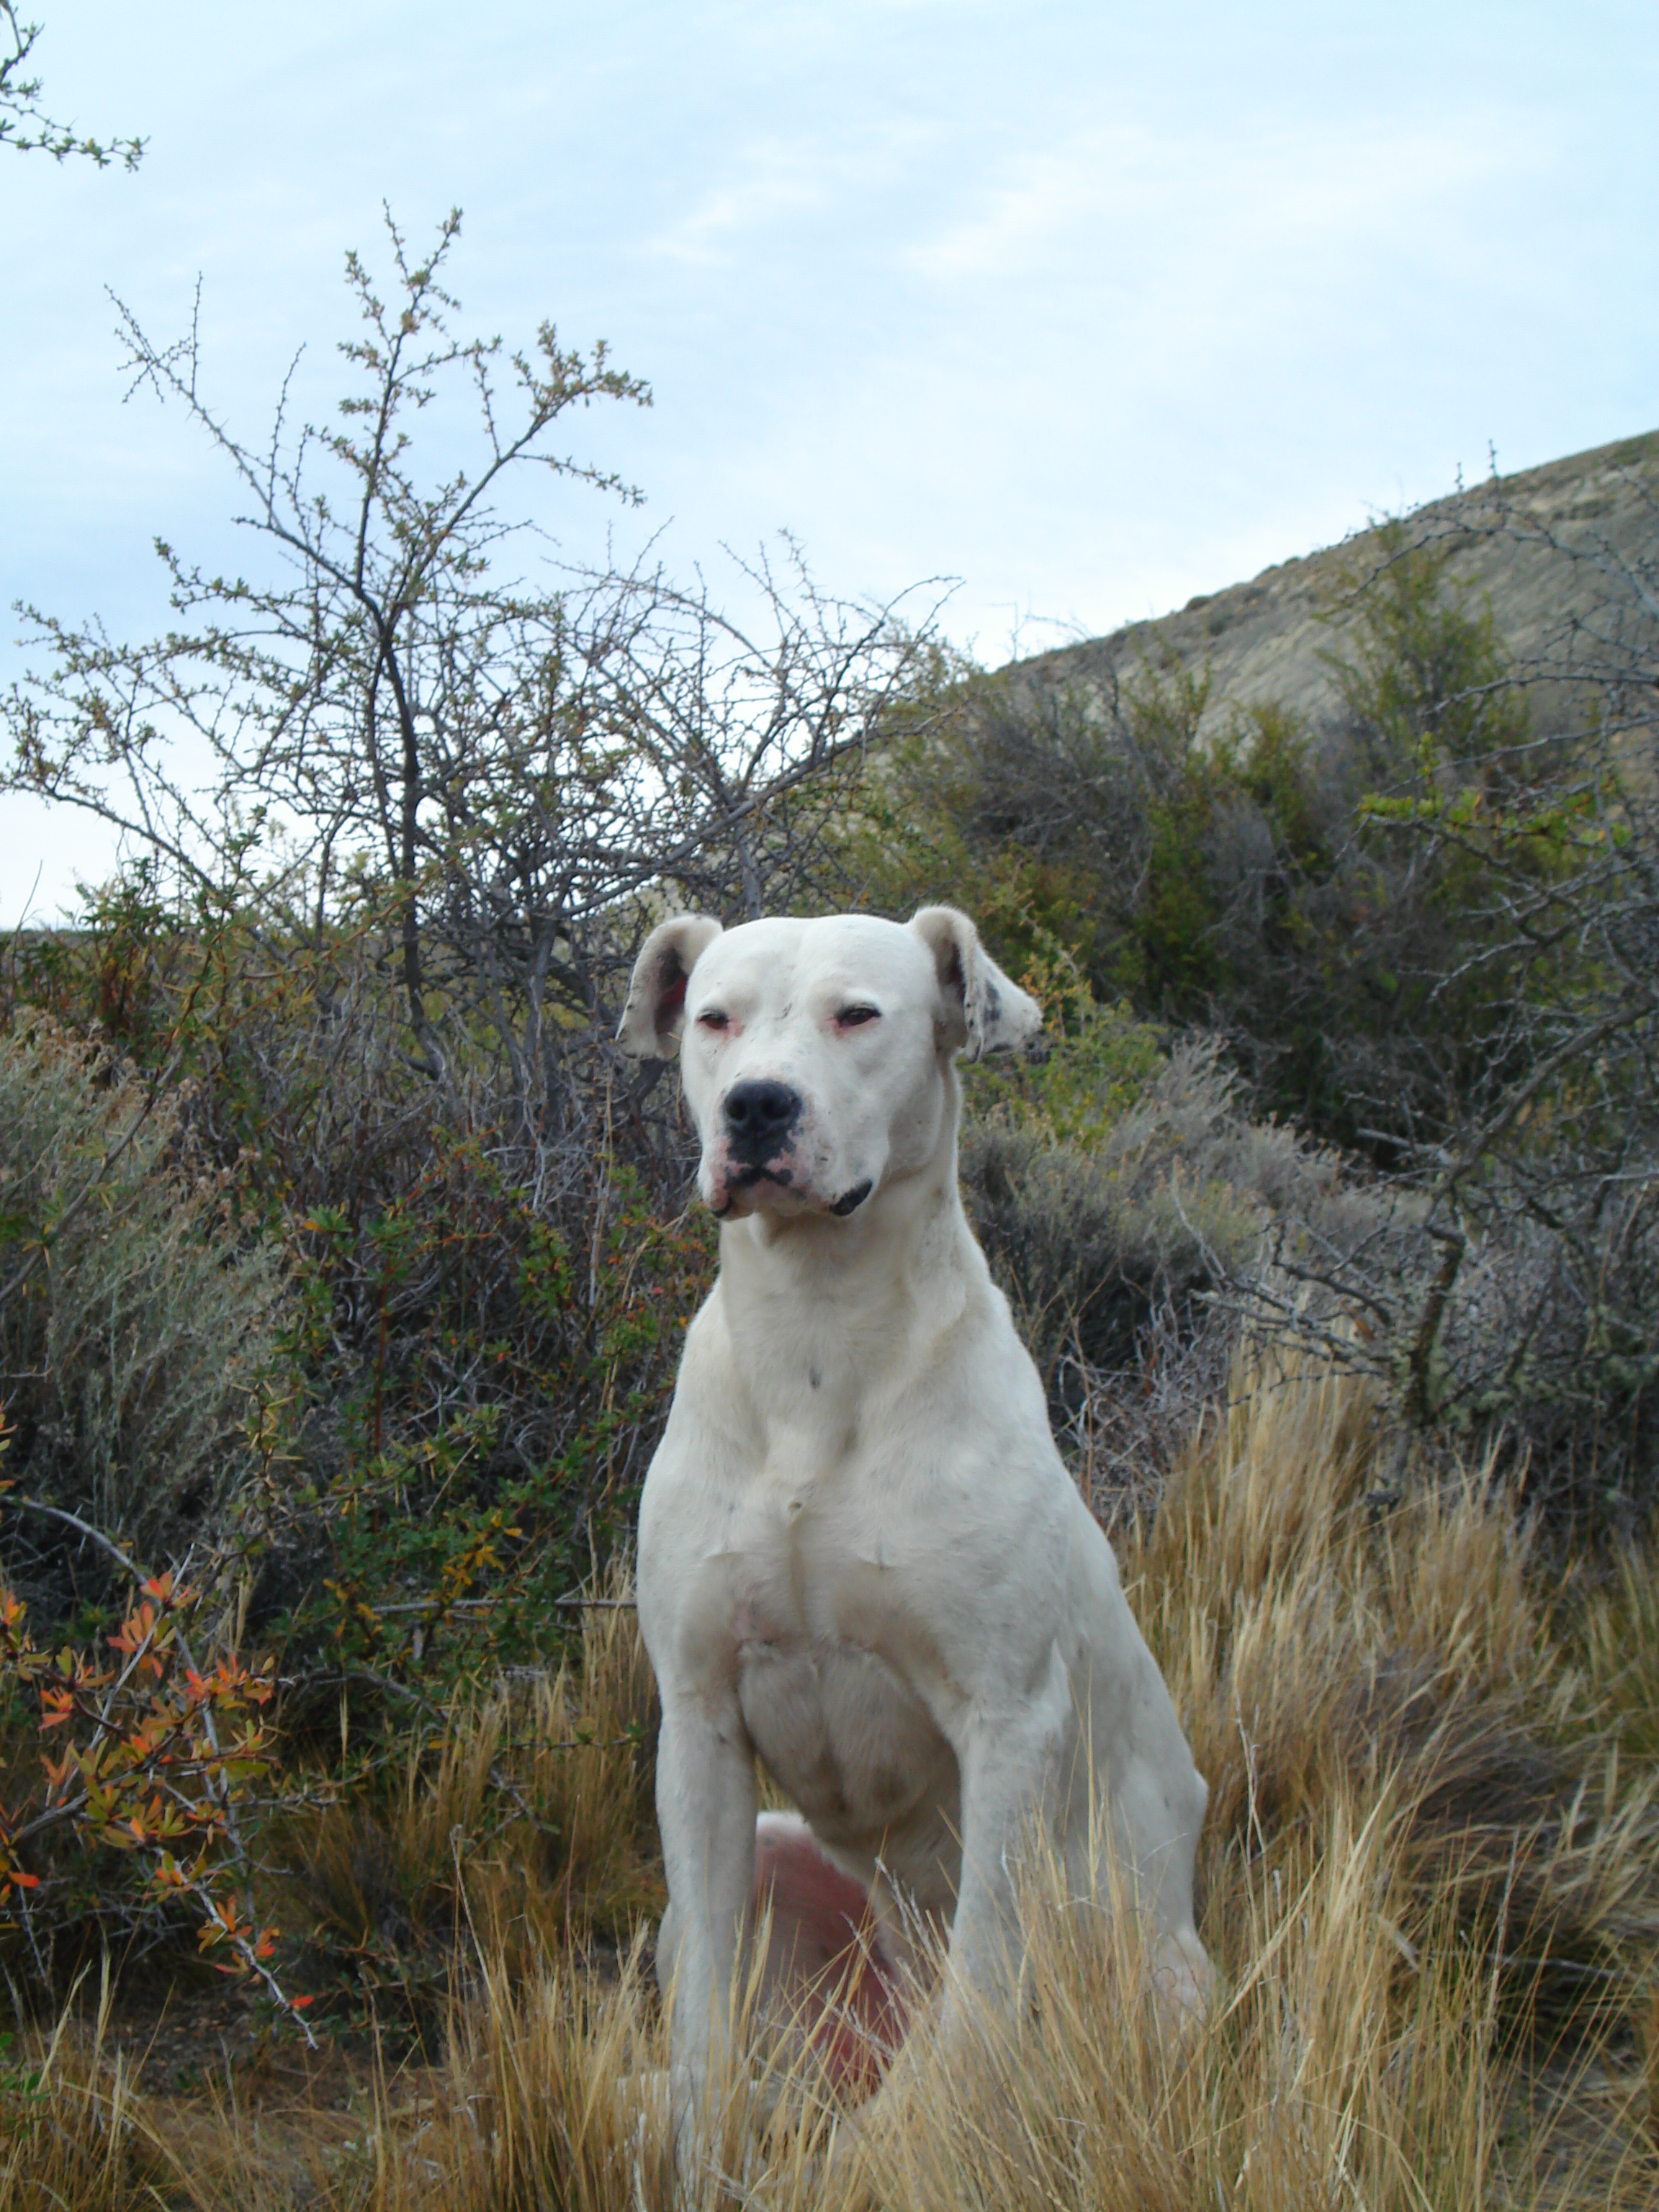 Pictures Of Dogo Argentino Dogs